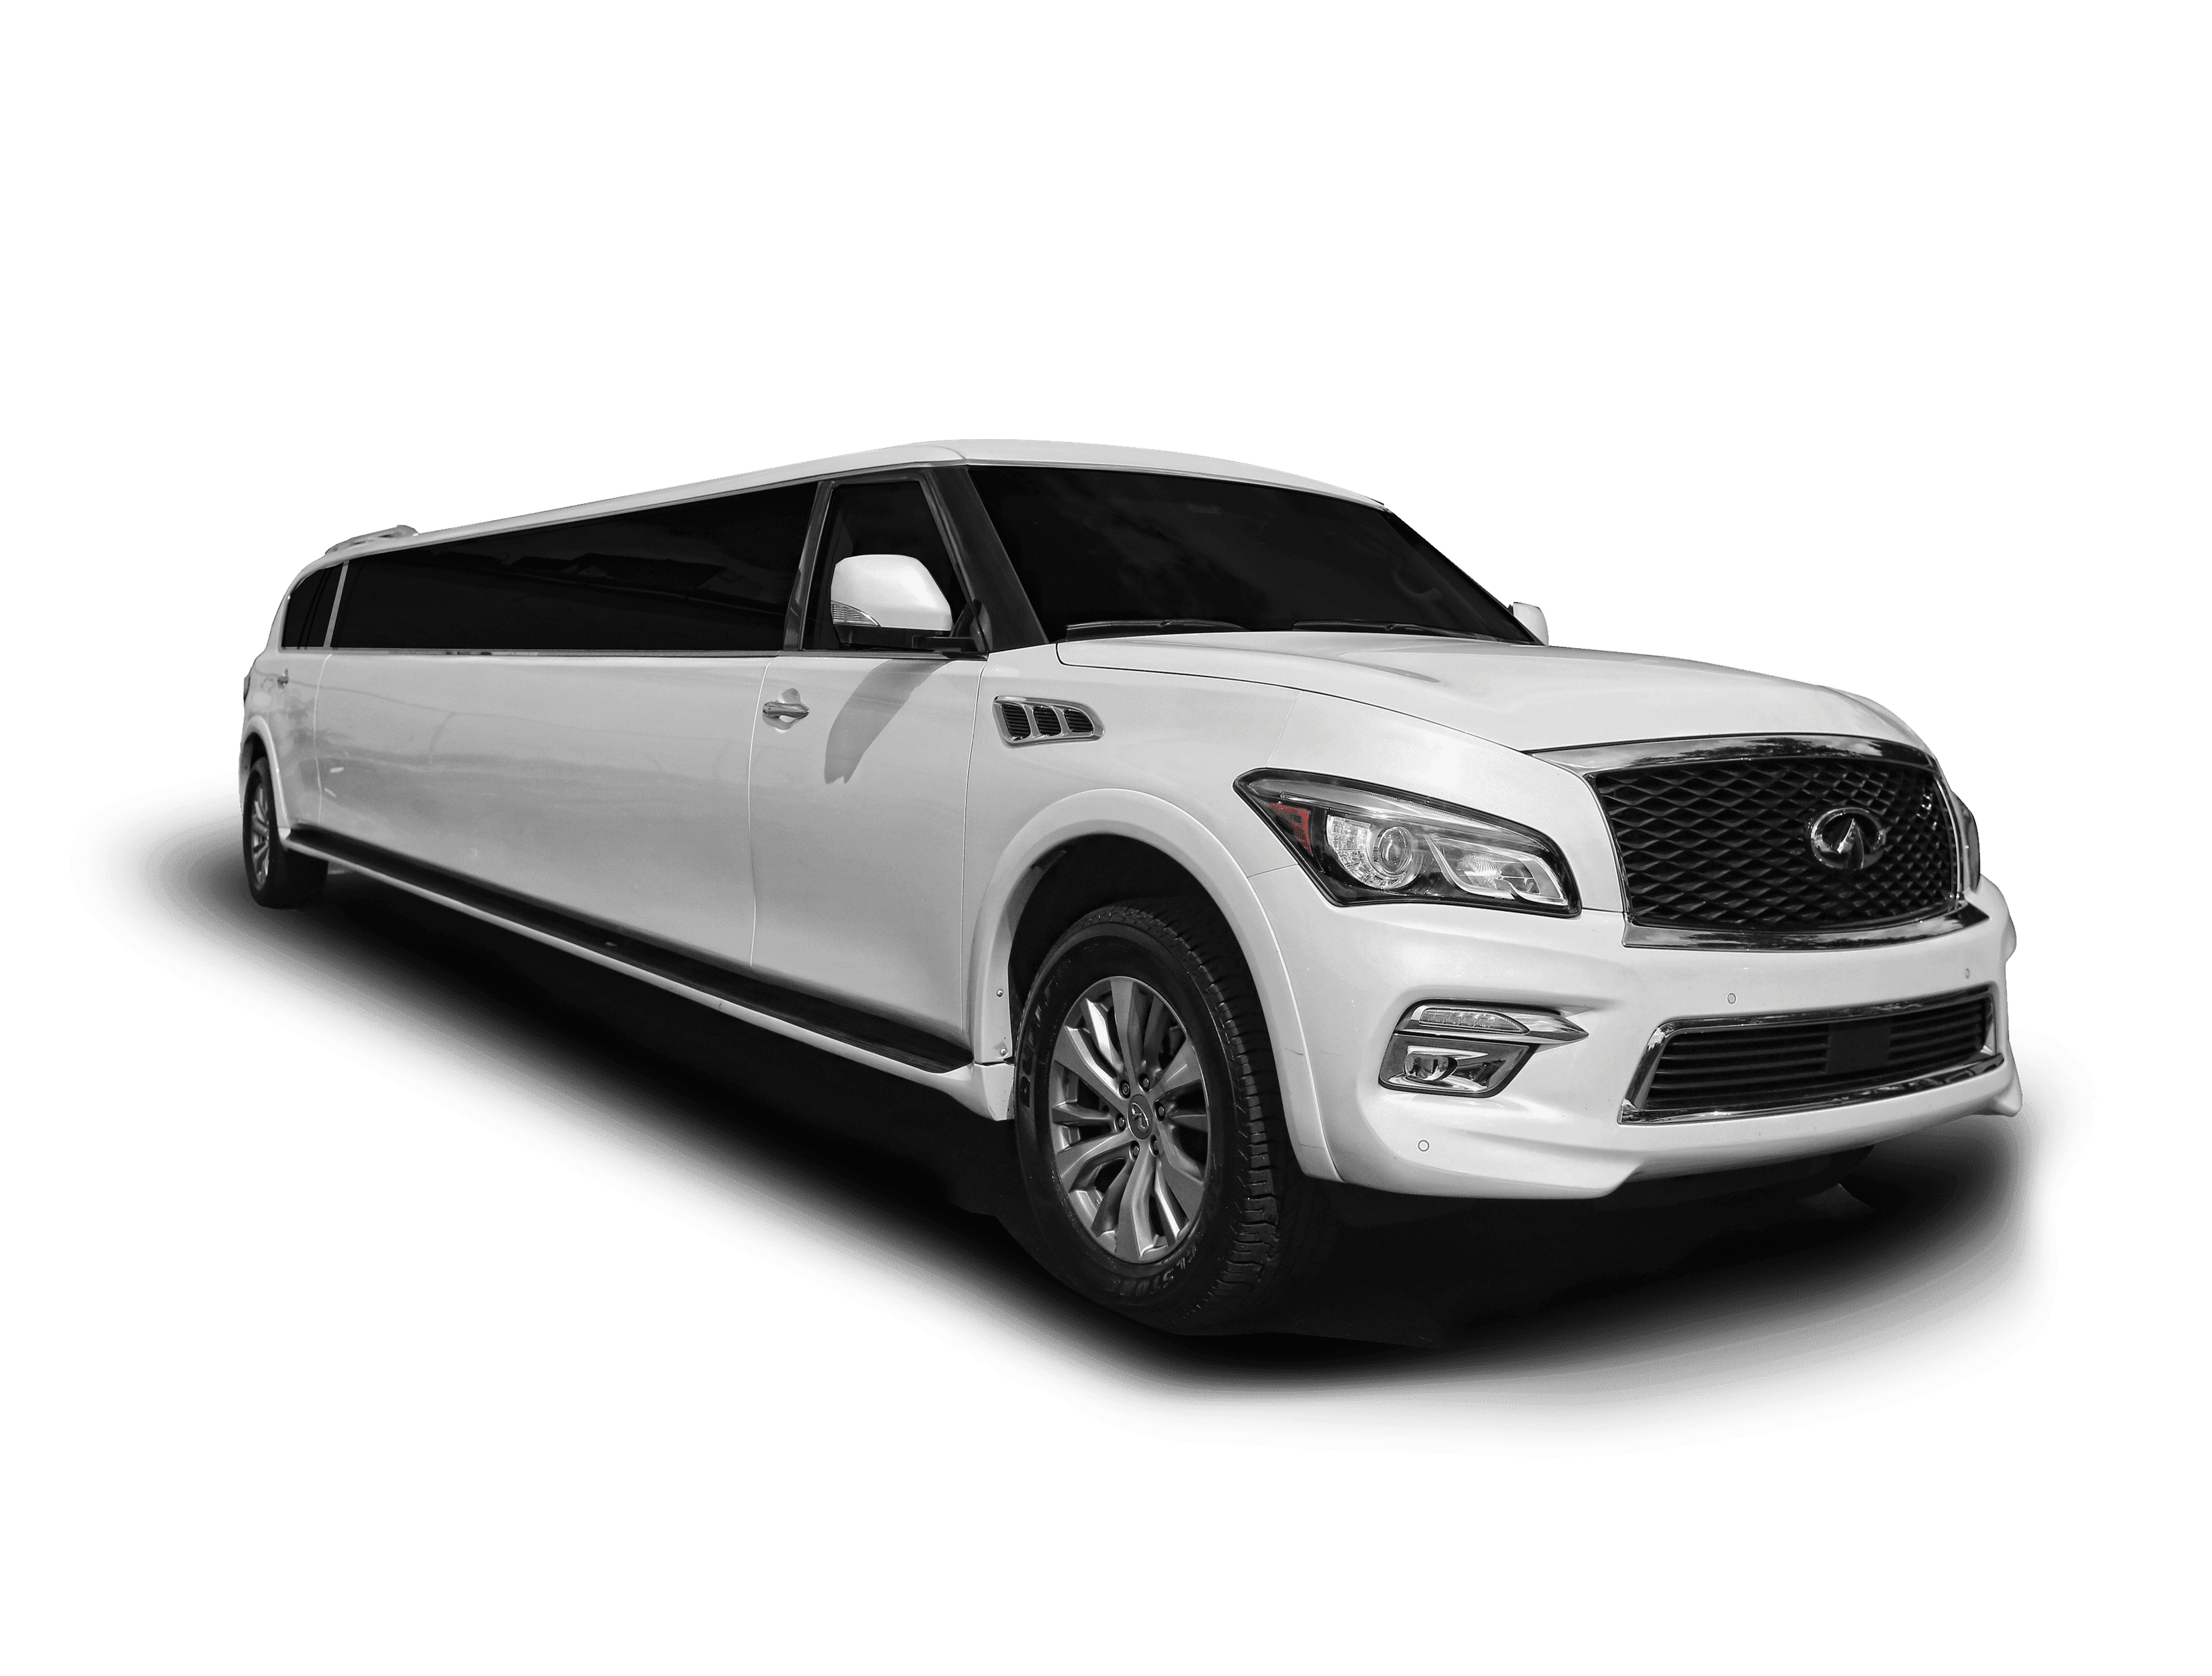 Infiniti QX 80 limousine for theater / concert event in NJ - NY